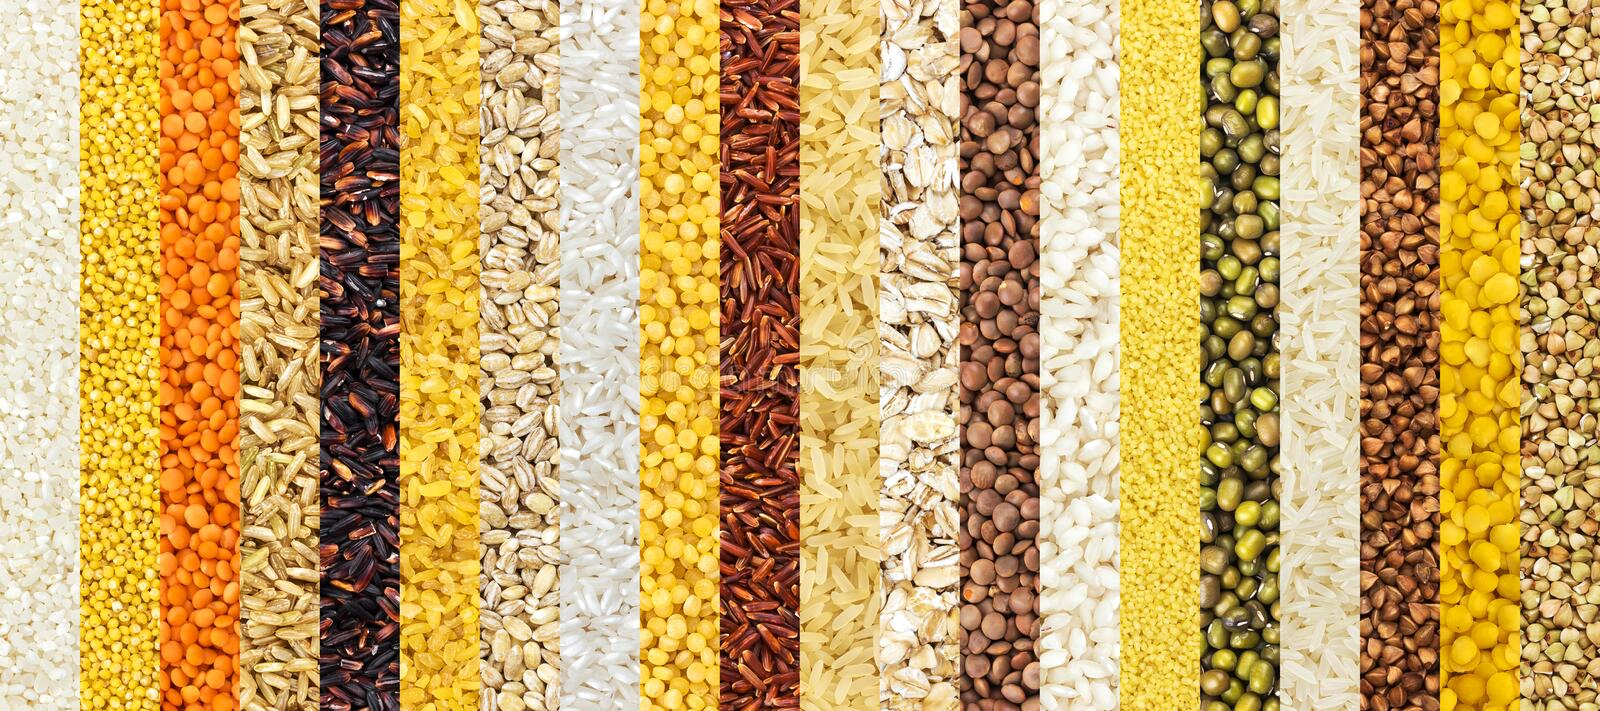 Collection of different groats backgrounds, cereals textures collection. Closeup royalty free stock images